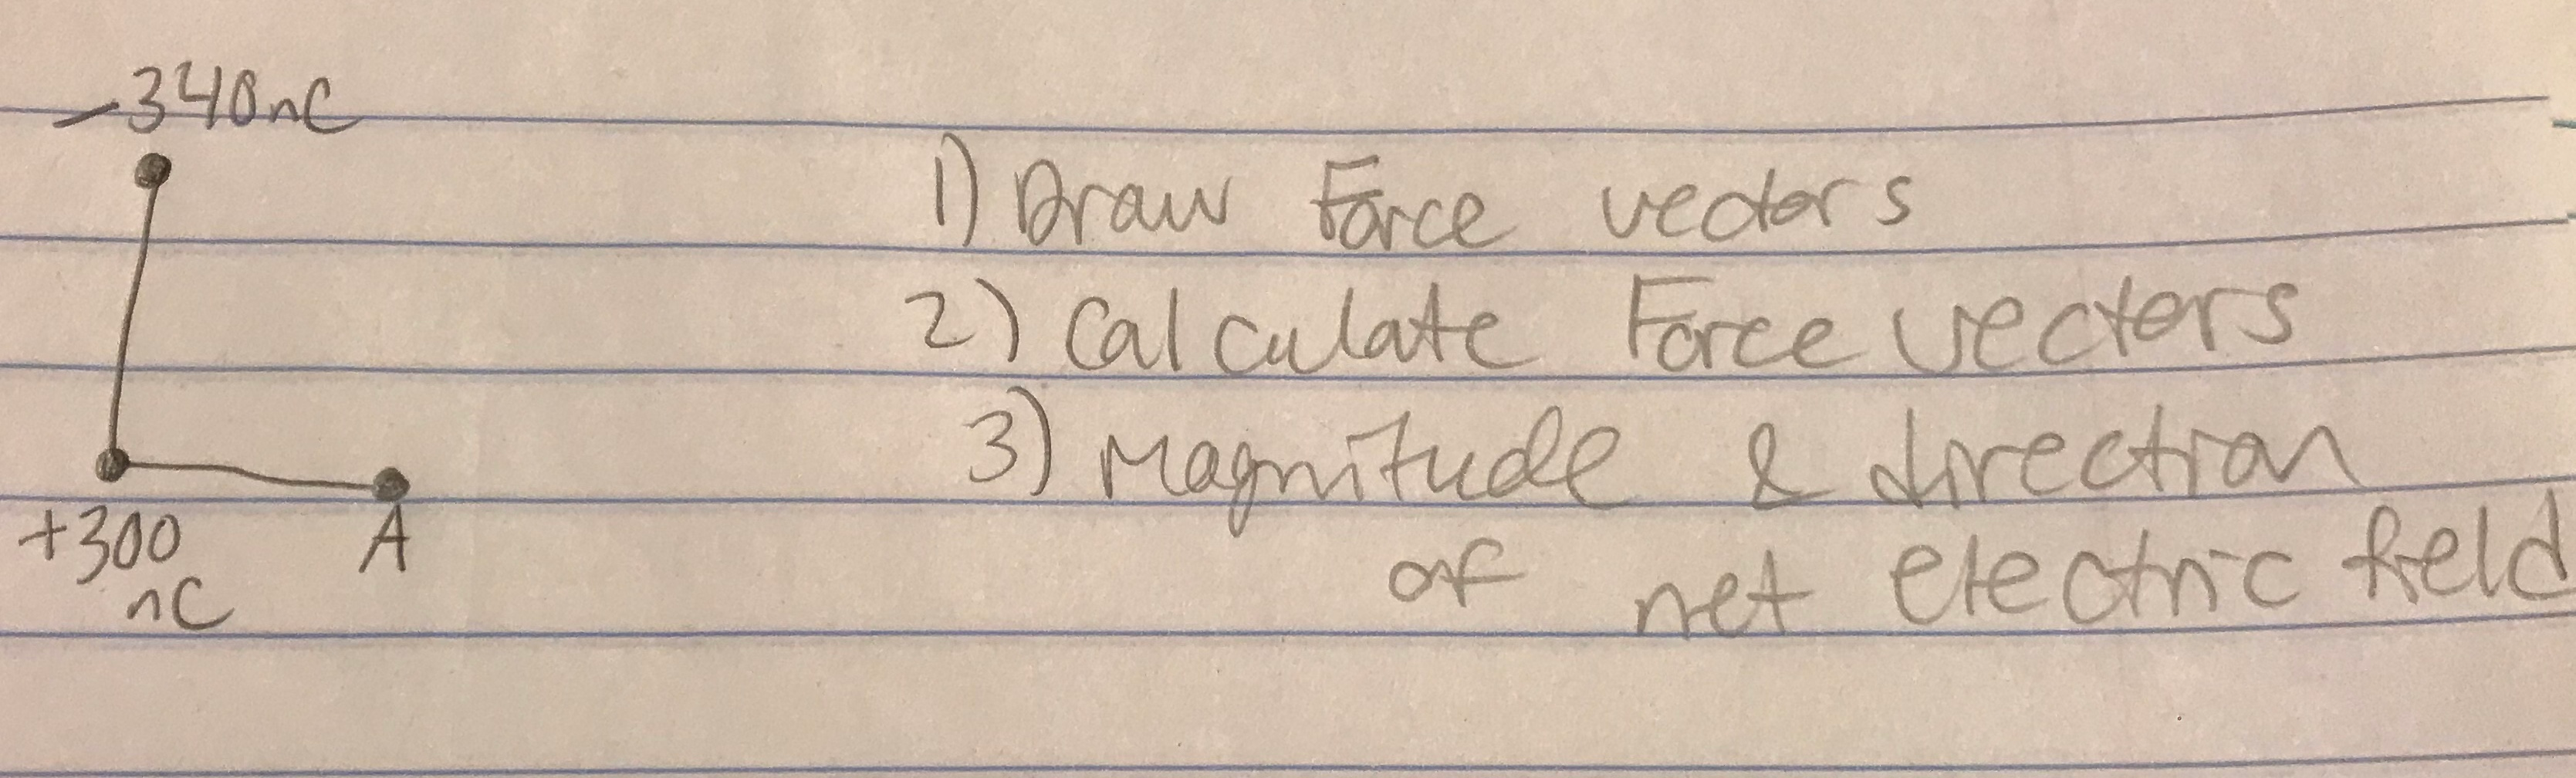 340ne 1) Draw Force vedors 2) Calculate Force vectors 3) magnitude & direction of net electric +300 feld ng